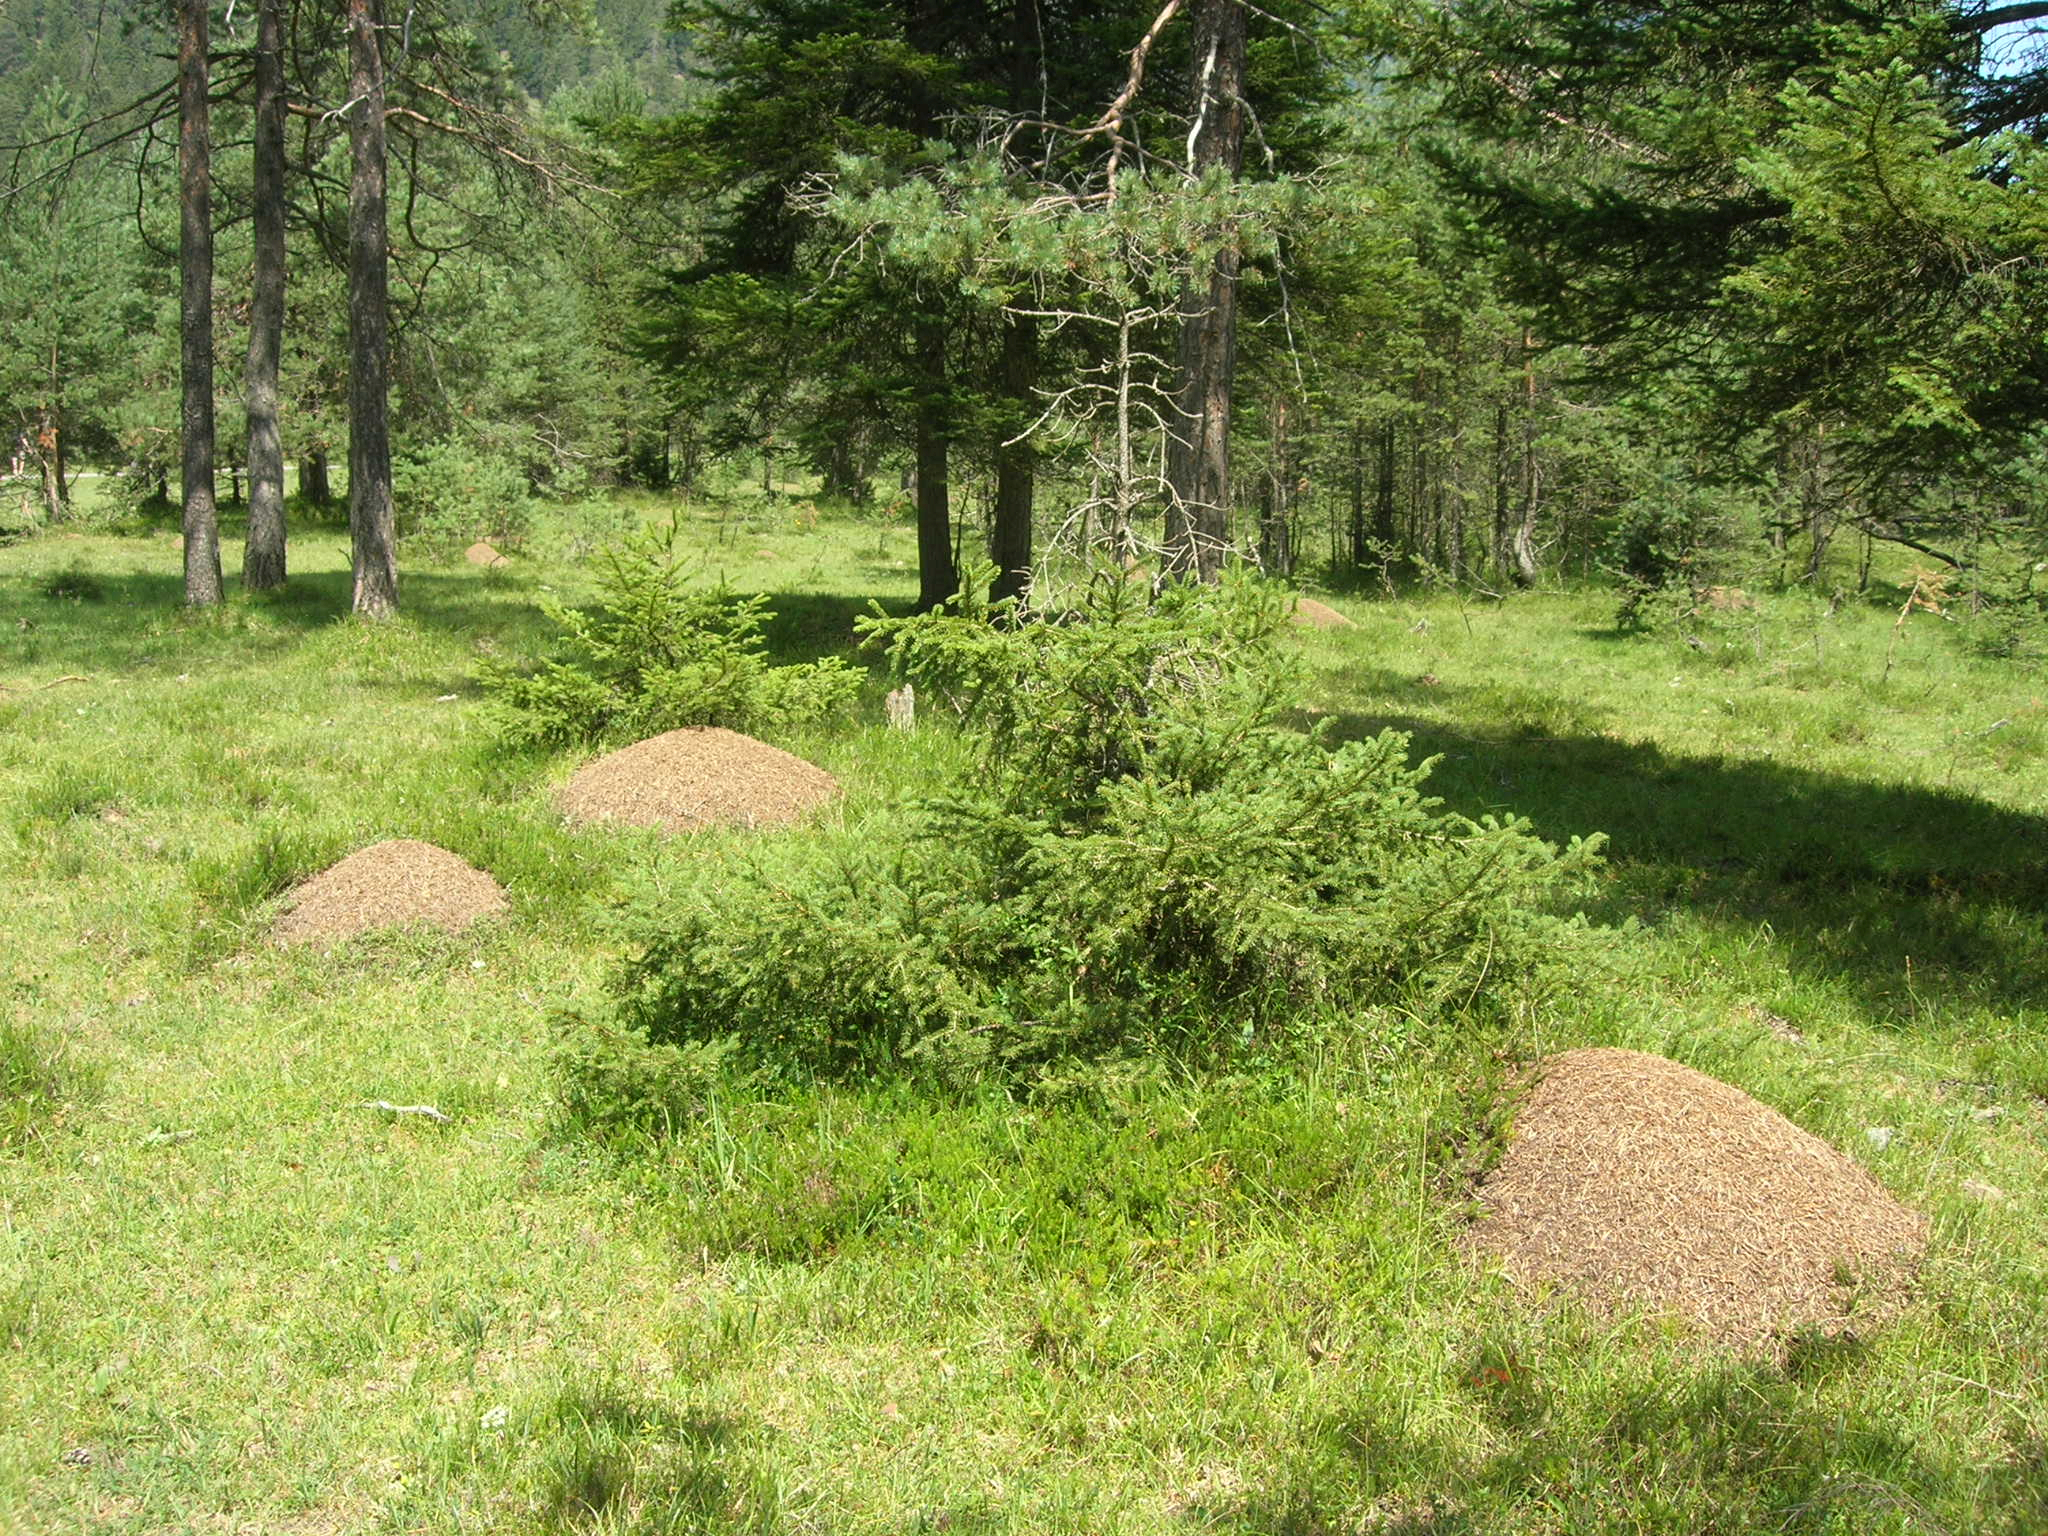 ant hills in open spruce forest